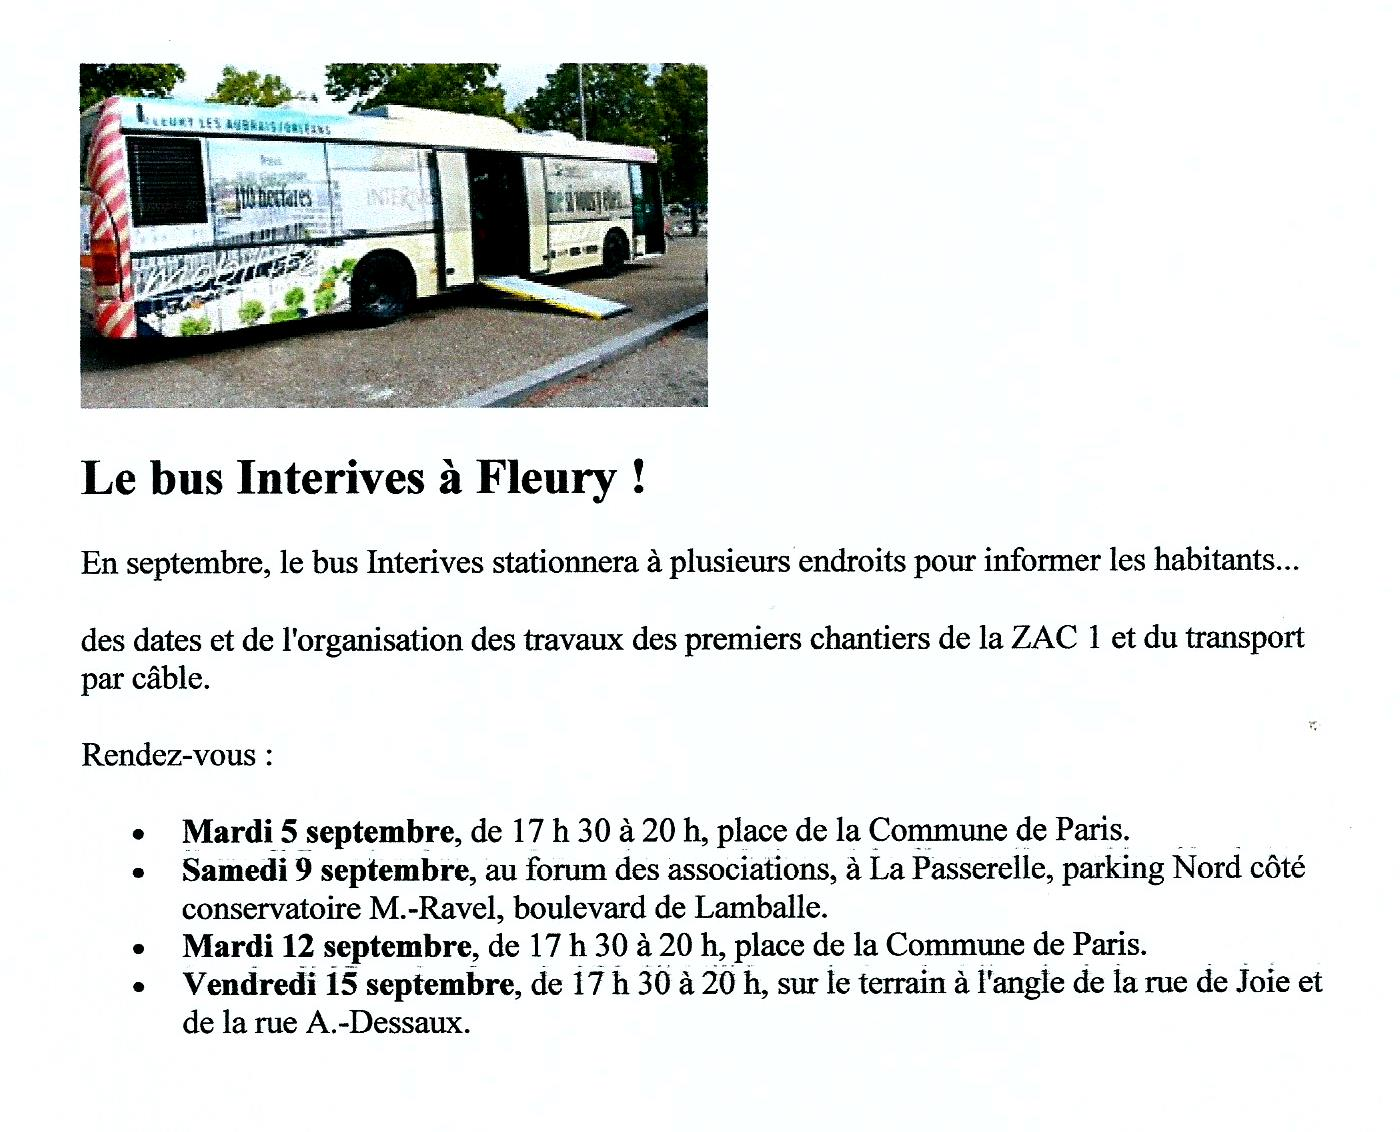 Scan Le bus interives à Fleury 2017 (15.09.2017).jpg